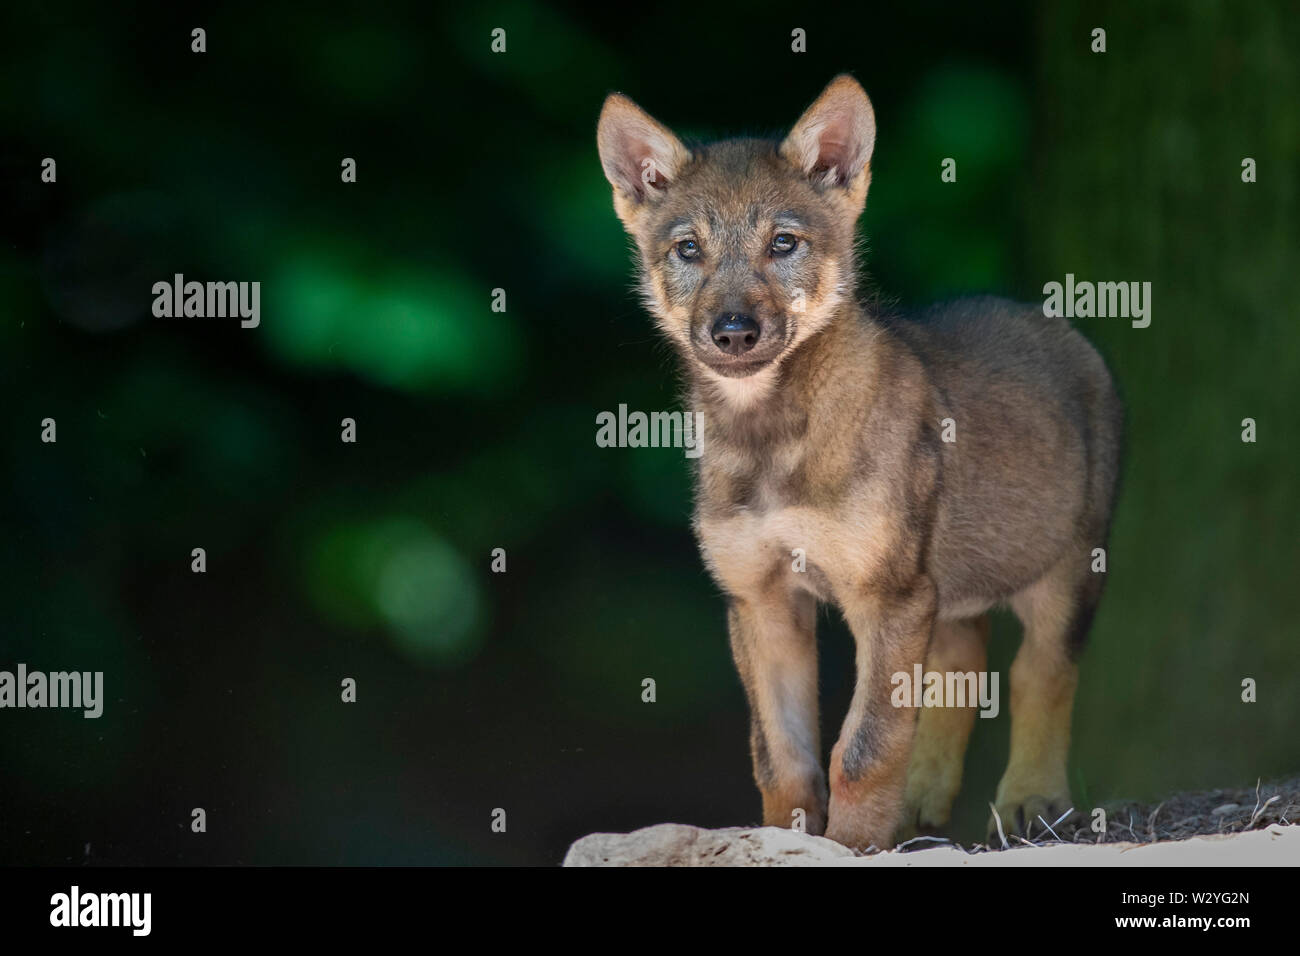 Wolf cub, Canis lupus - Stock Image